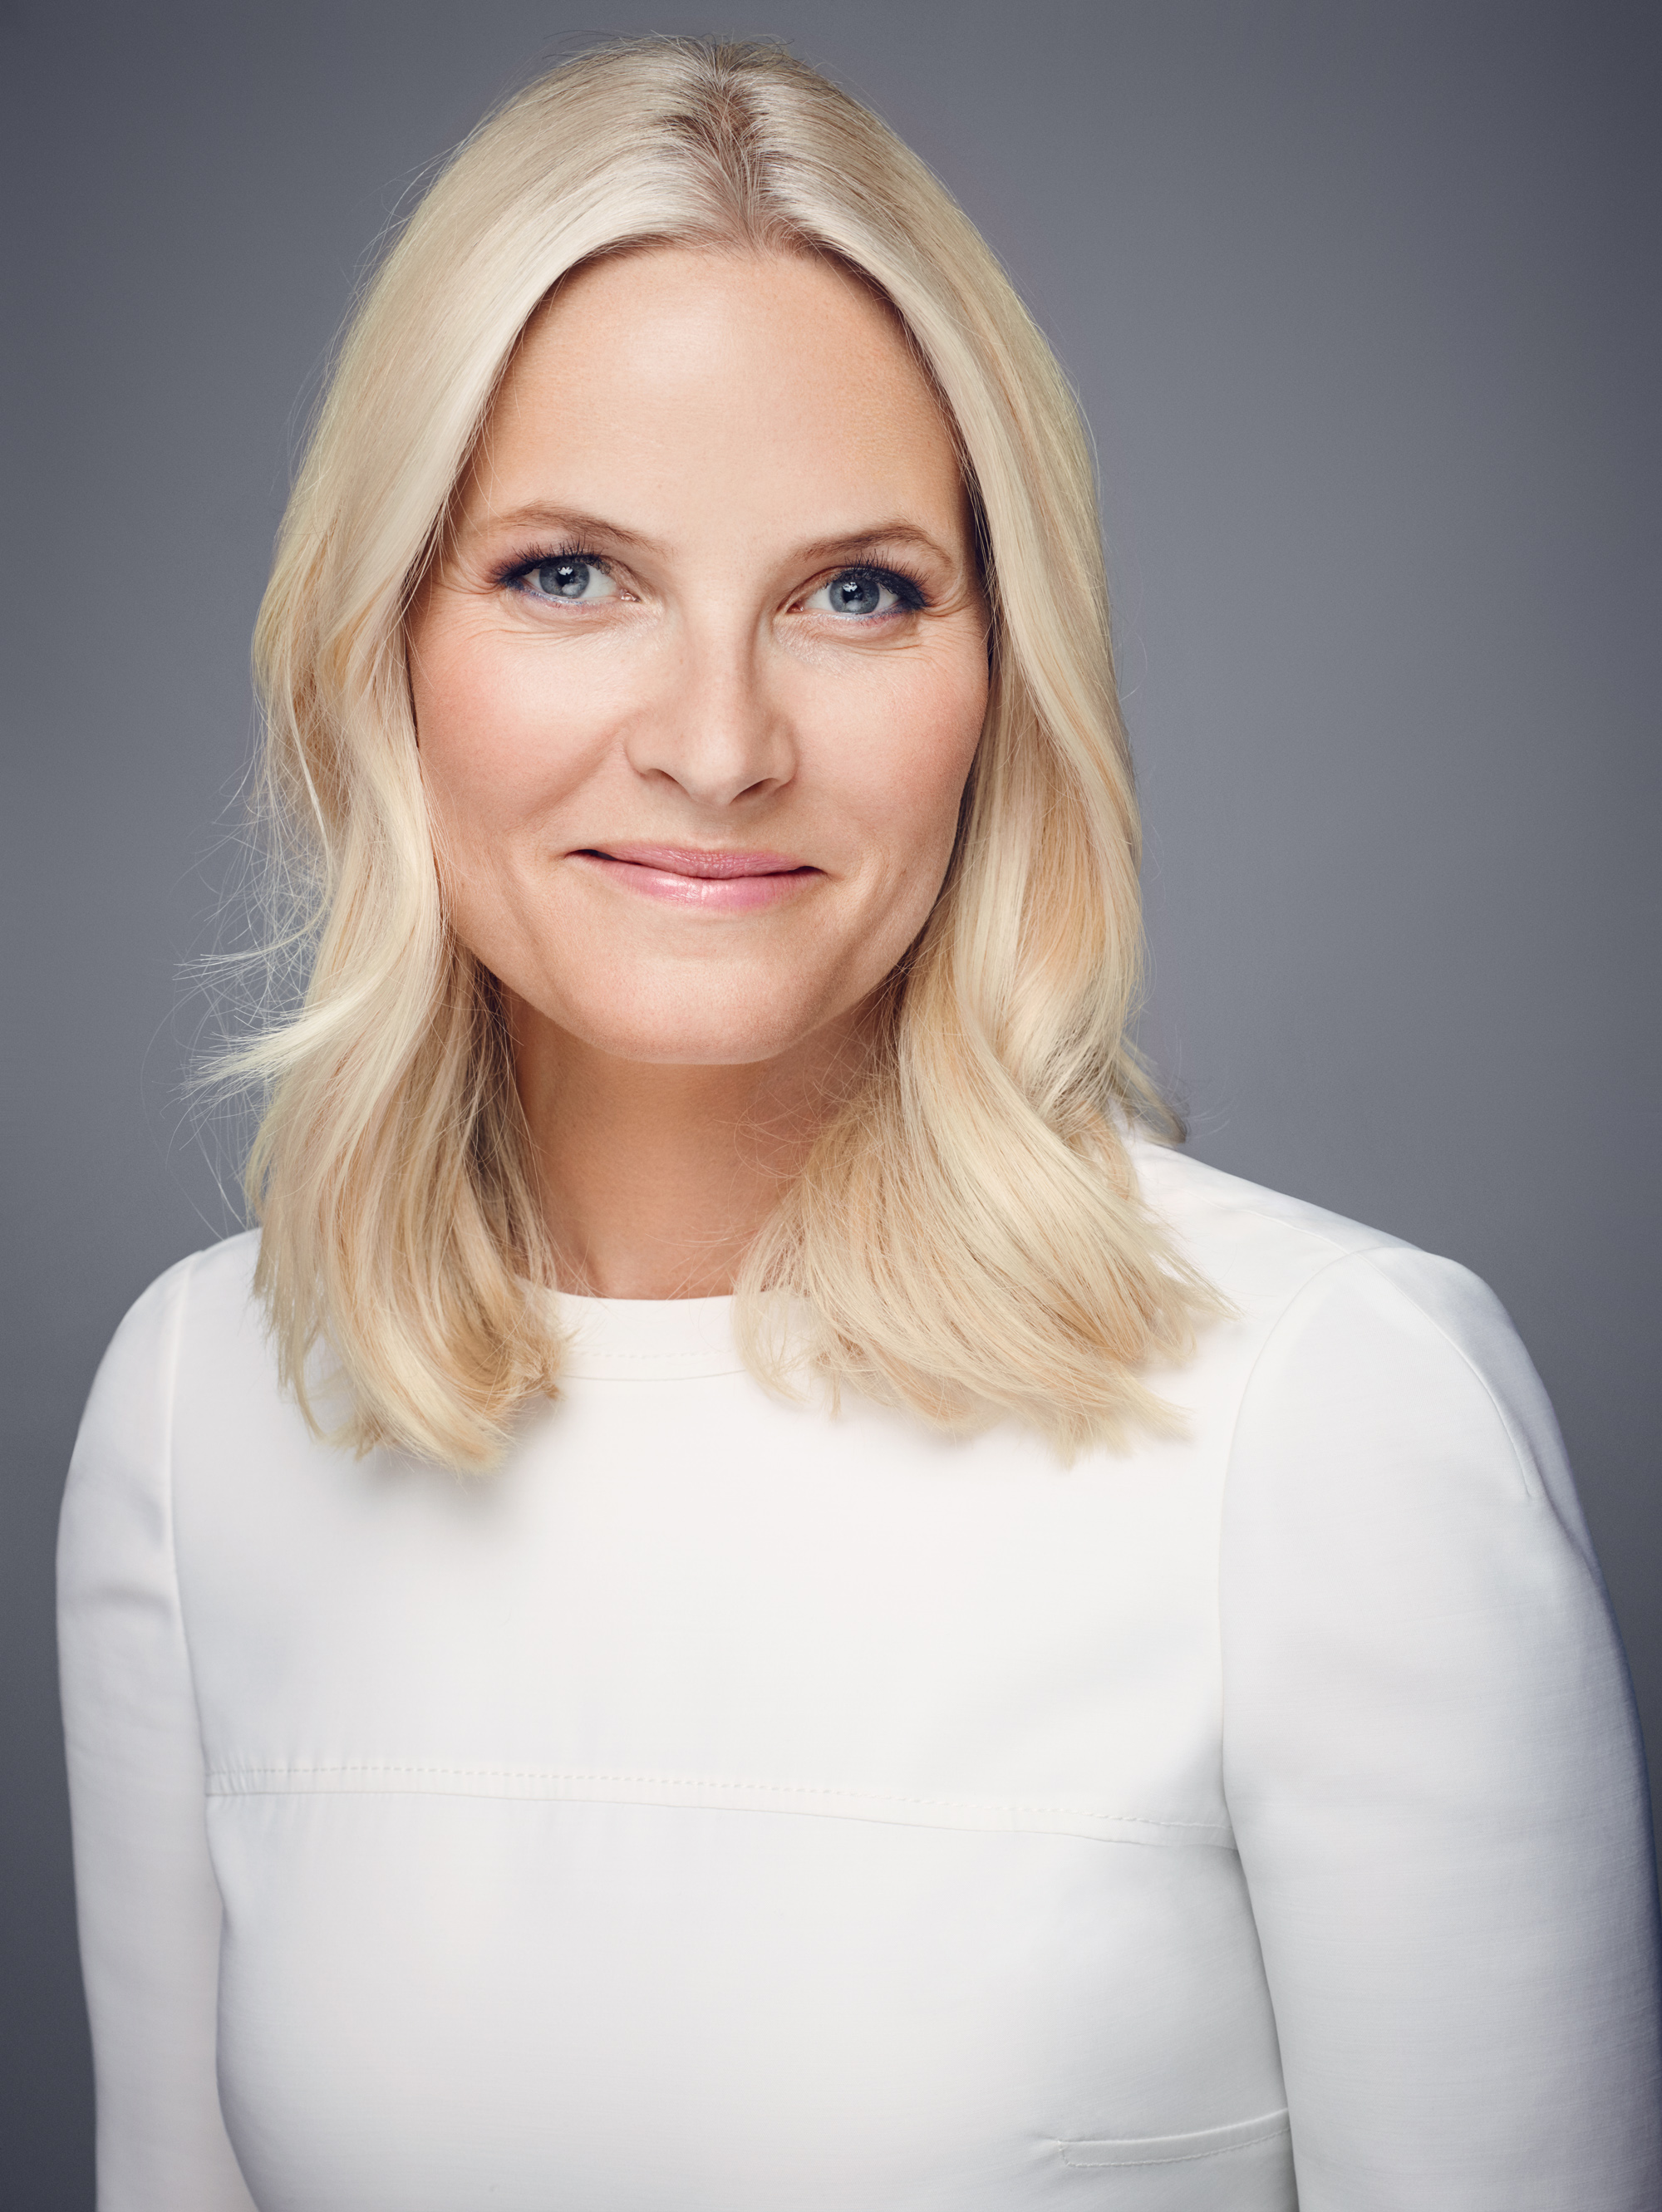 Her Royal Highness Crown Princess Mette-Marit